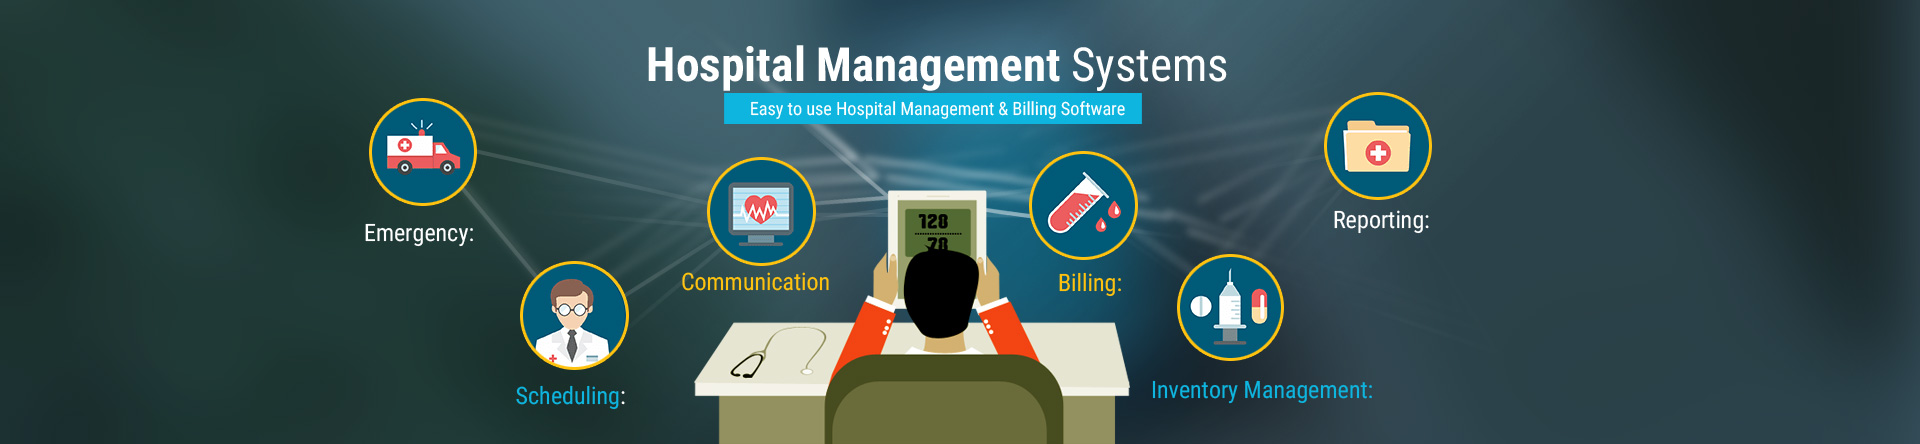 hight resolution of hospital management software